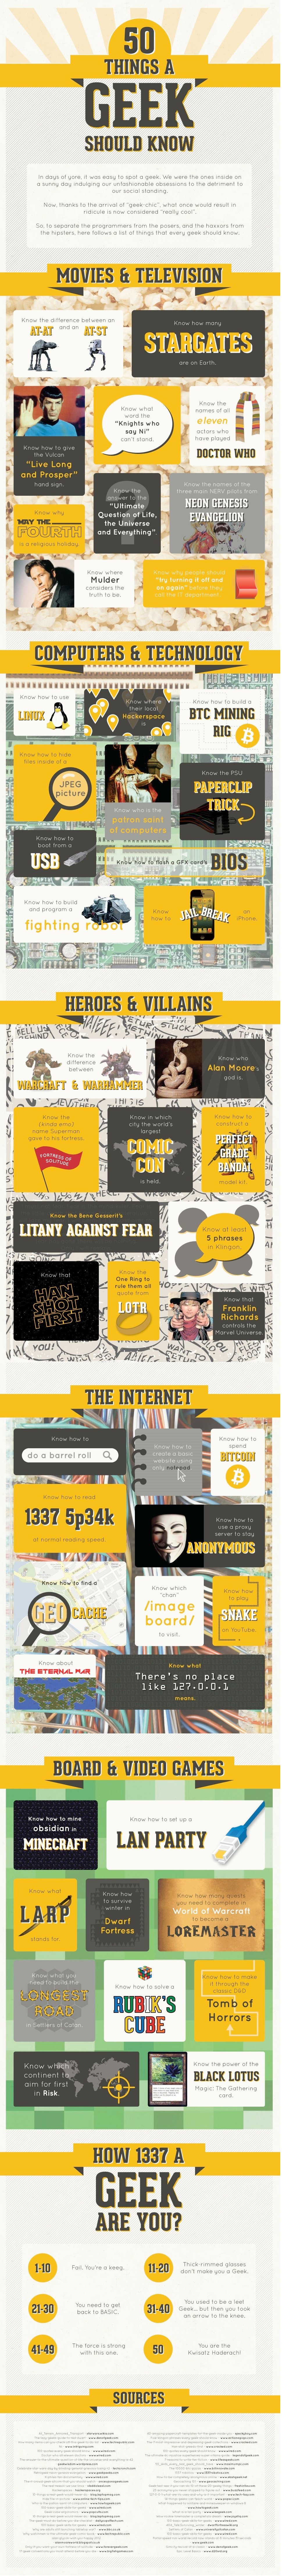 are_you_a_real_geek_infographic